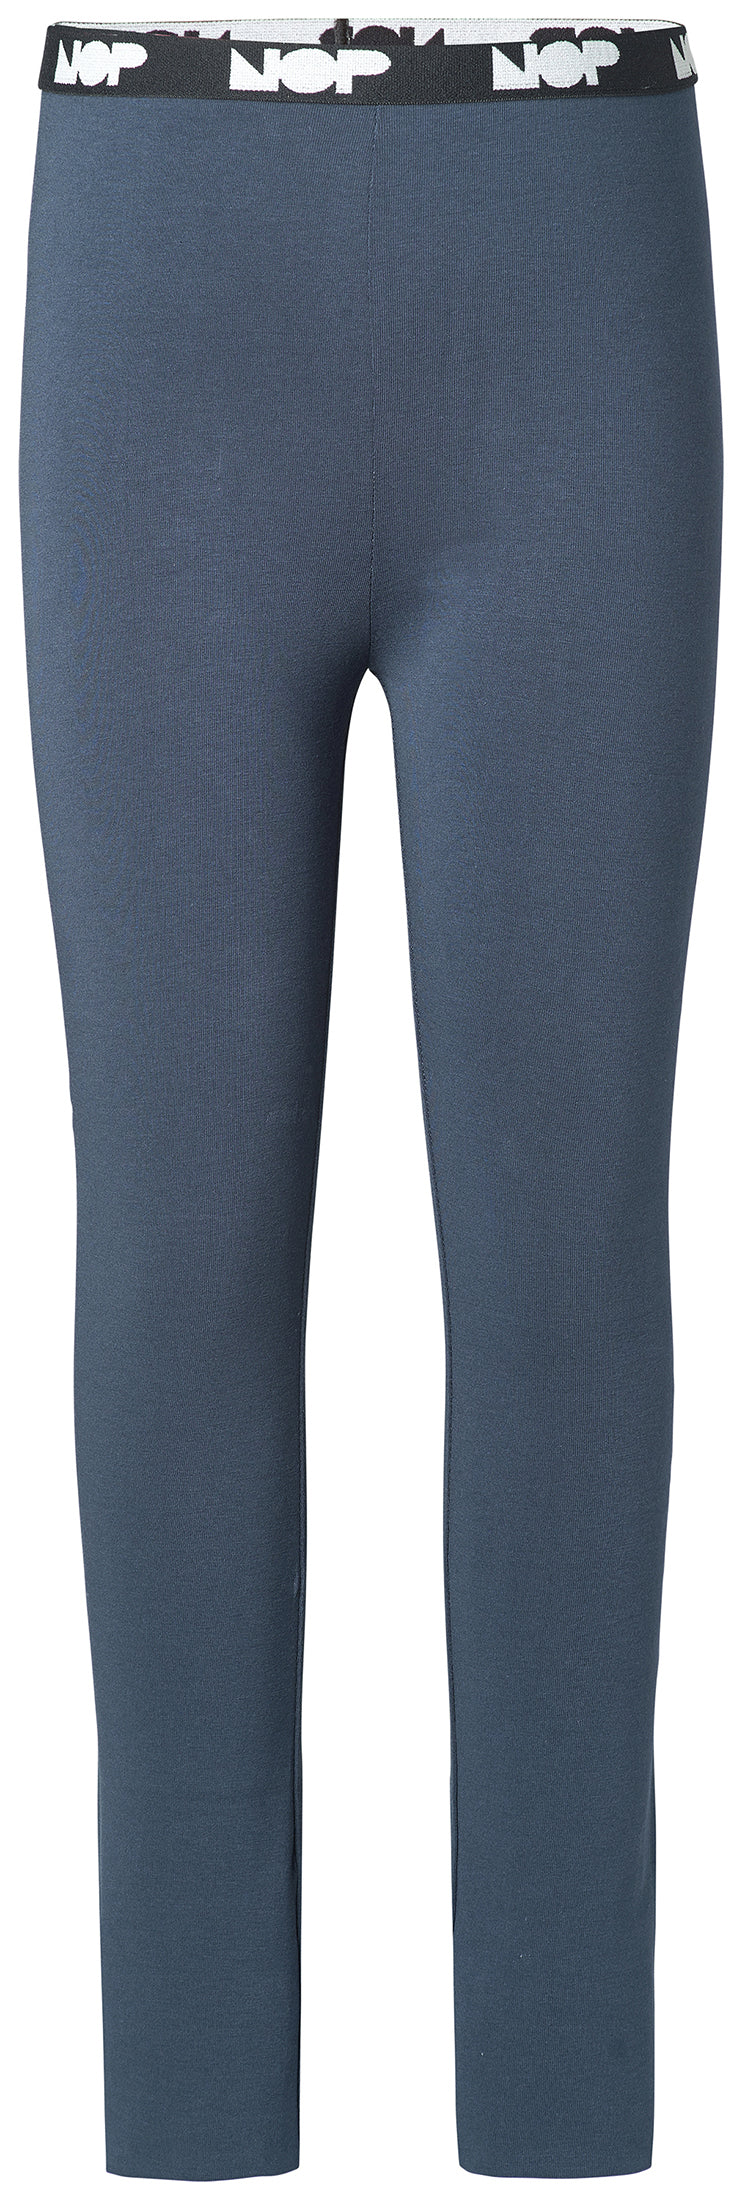 Kinder Leggins blau